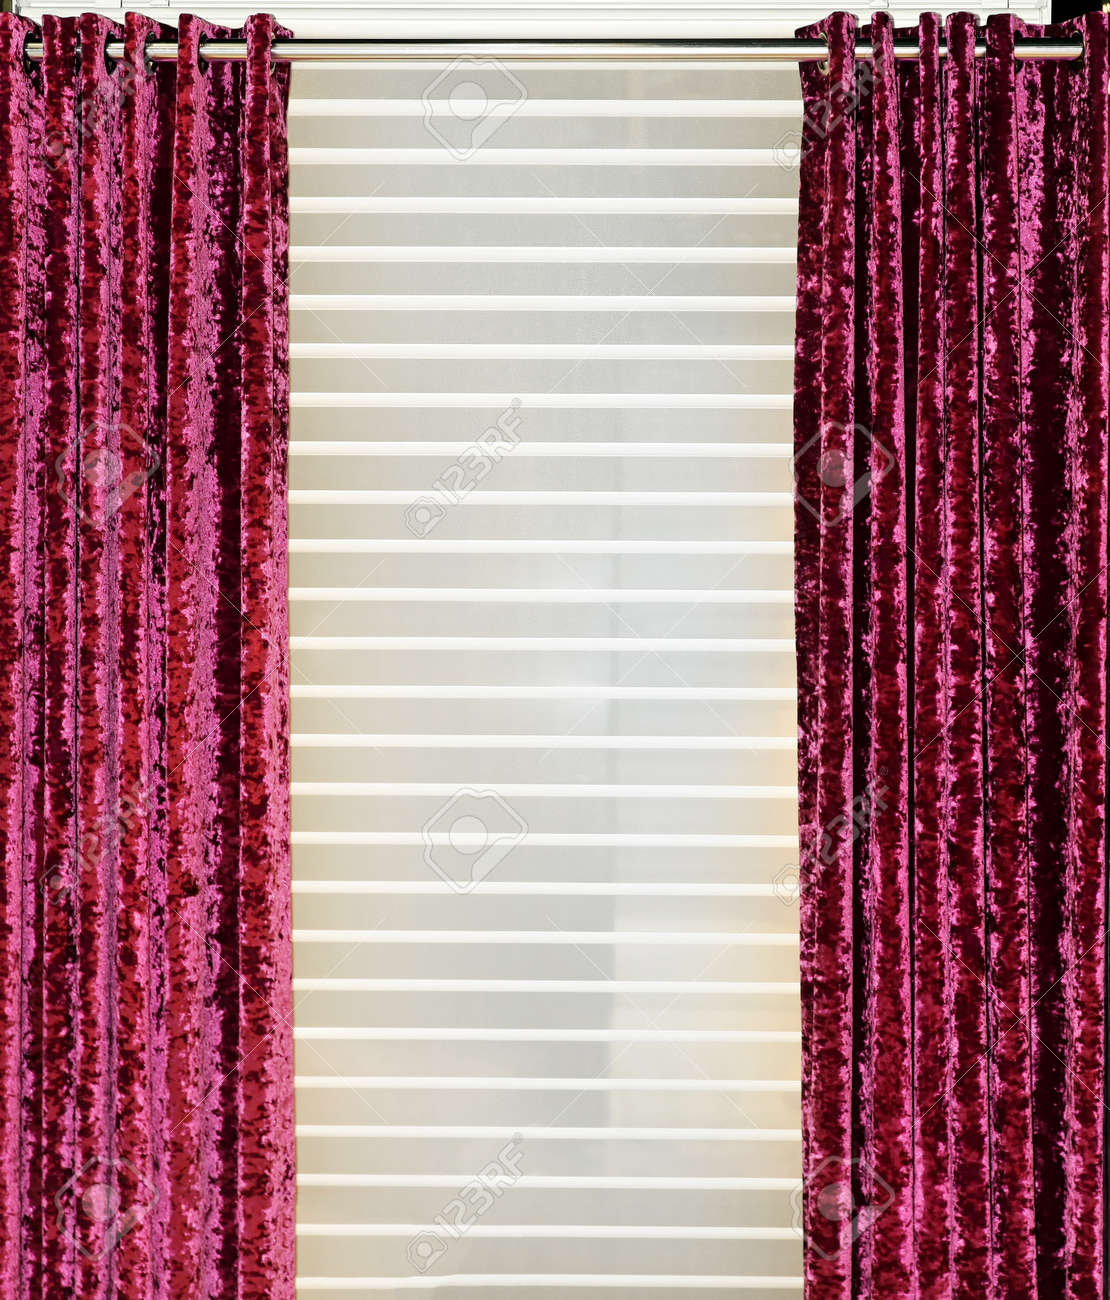 Red velvet window curtains - Detail Of Decorative Red Velvet Curtains In Home Interior Stock Photo 15713925